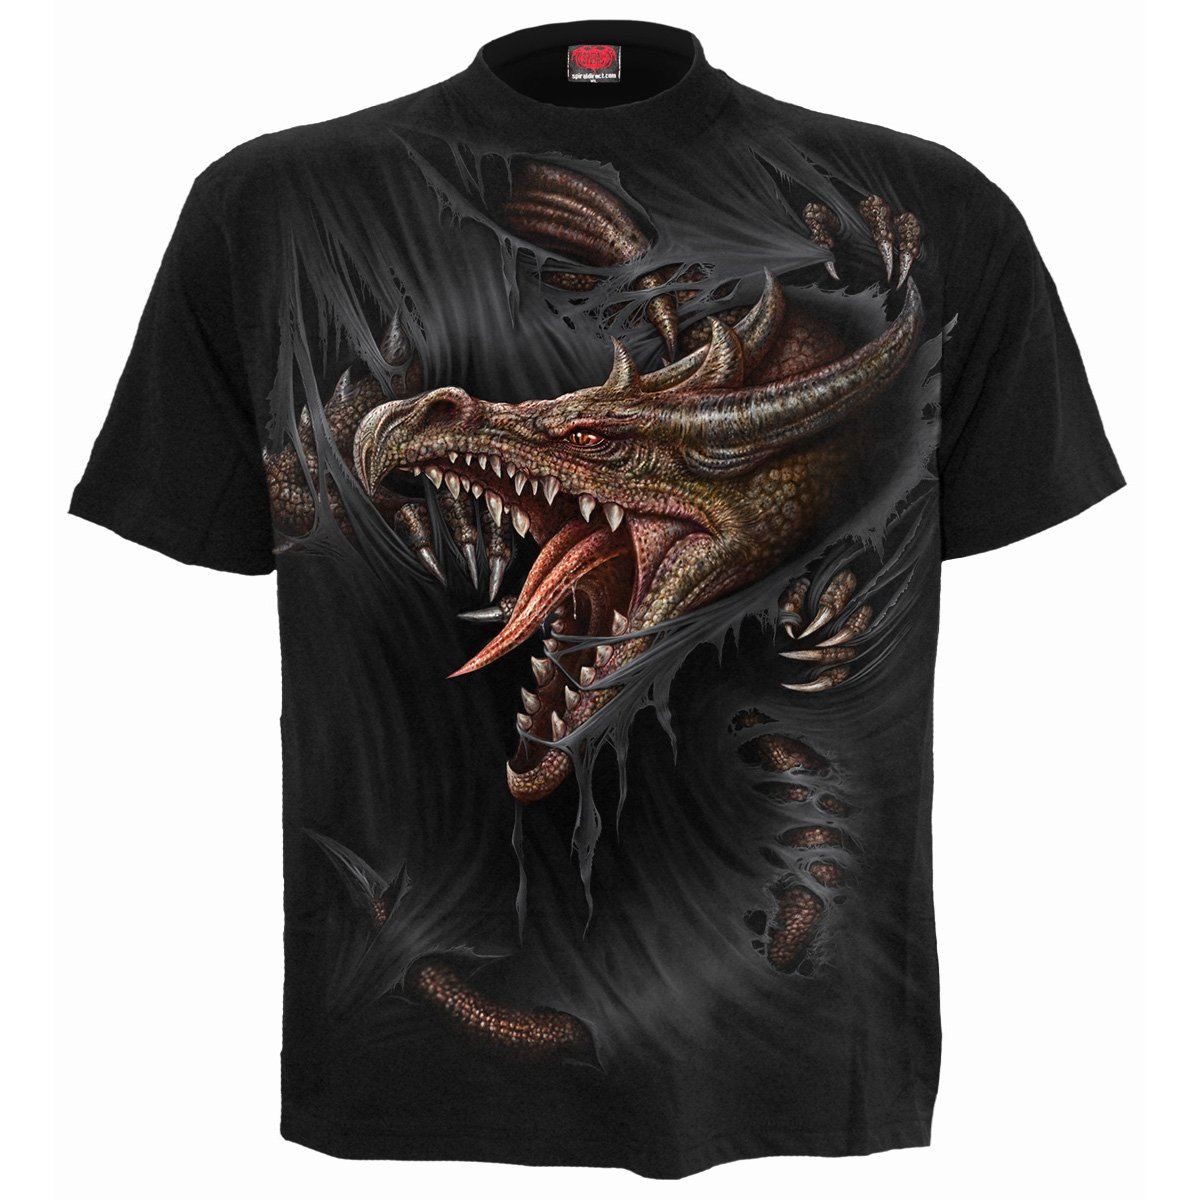 Captive Dragon Men's Black T-Shirt